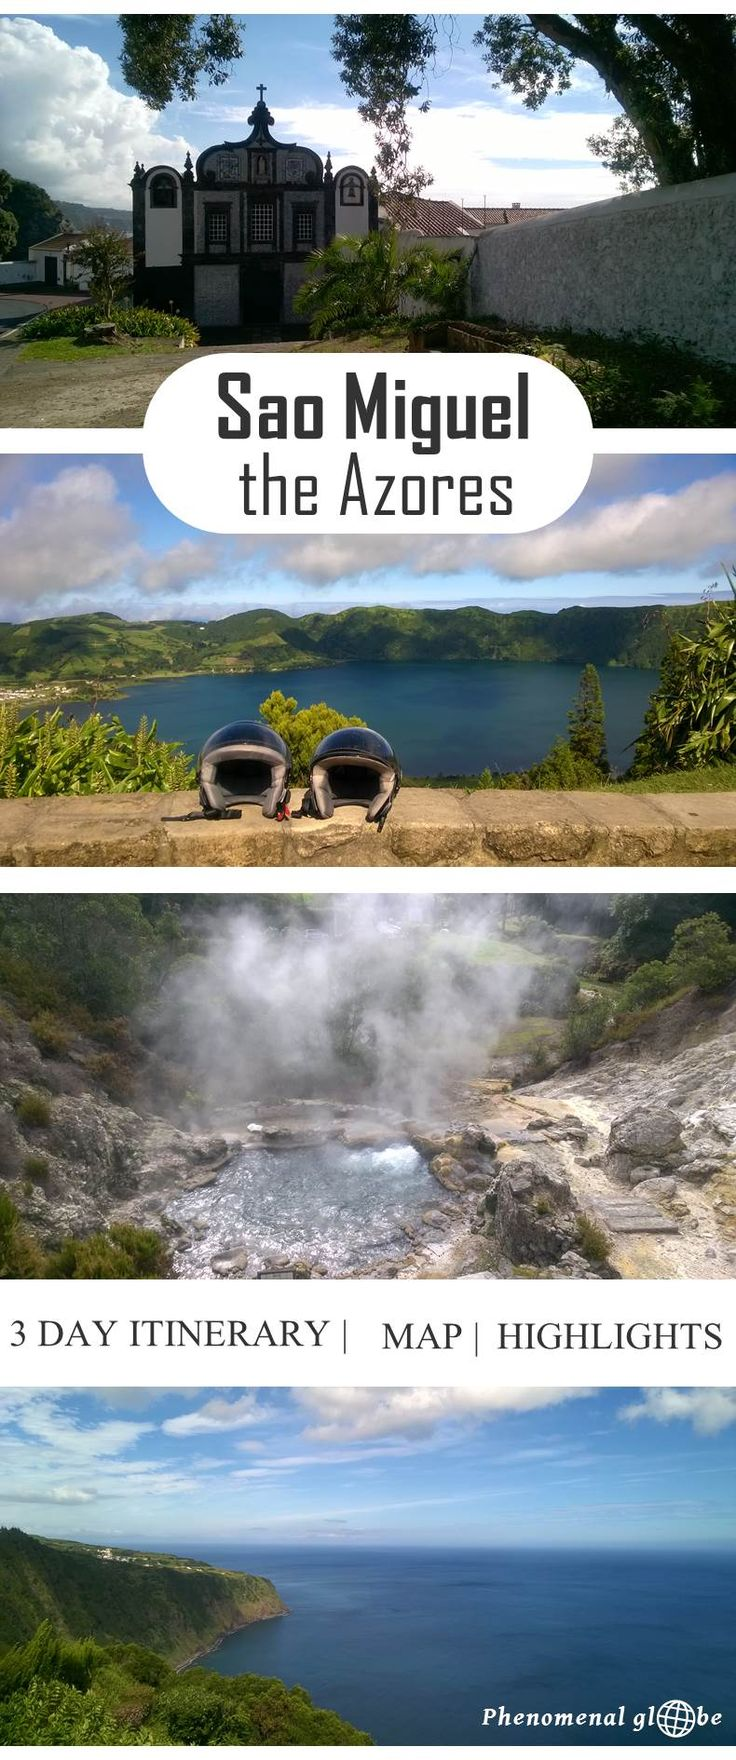 Detailed travel advice for Sao Miguel, a gorgeous and undiscovered island in the Atlantic Ocean! Budget information and 3 day itineraries with map and highlights.